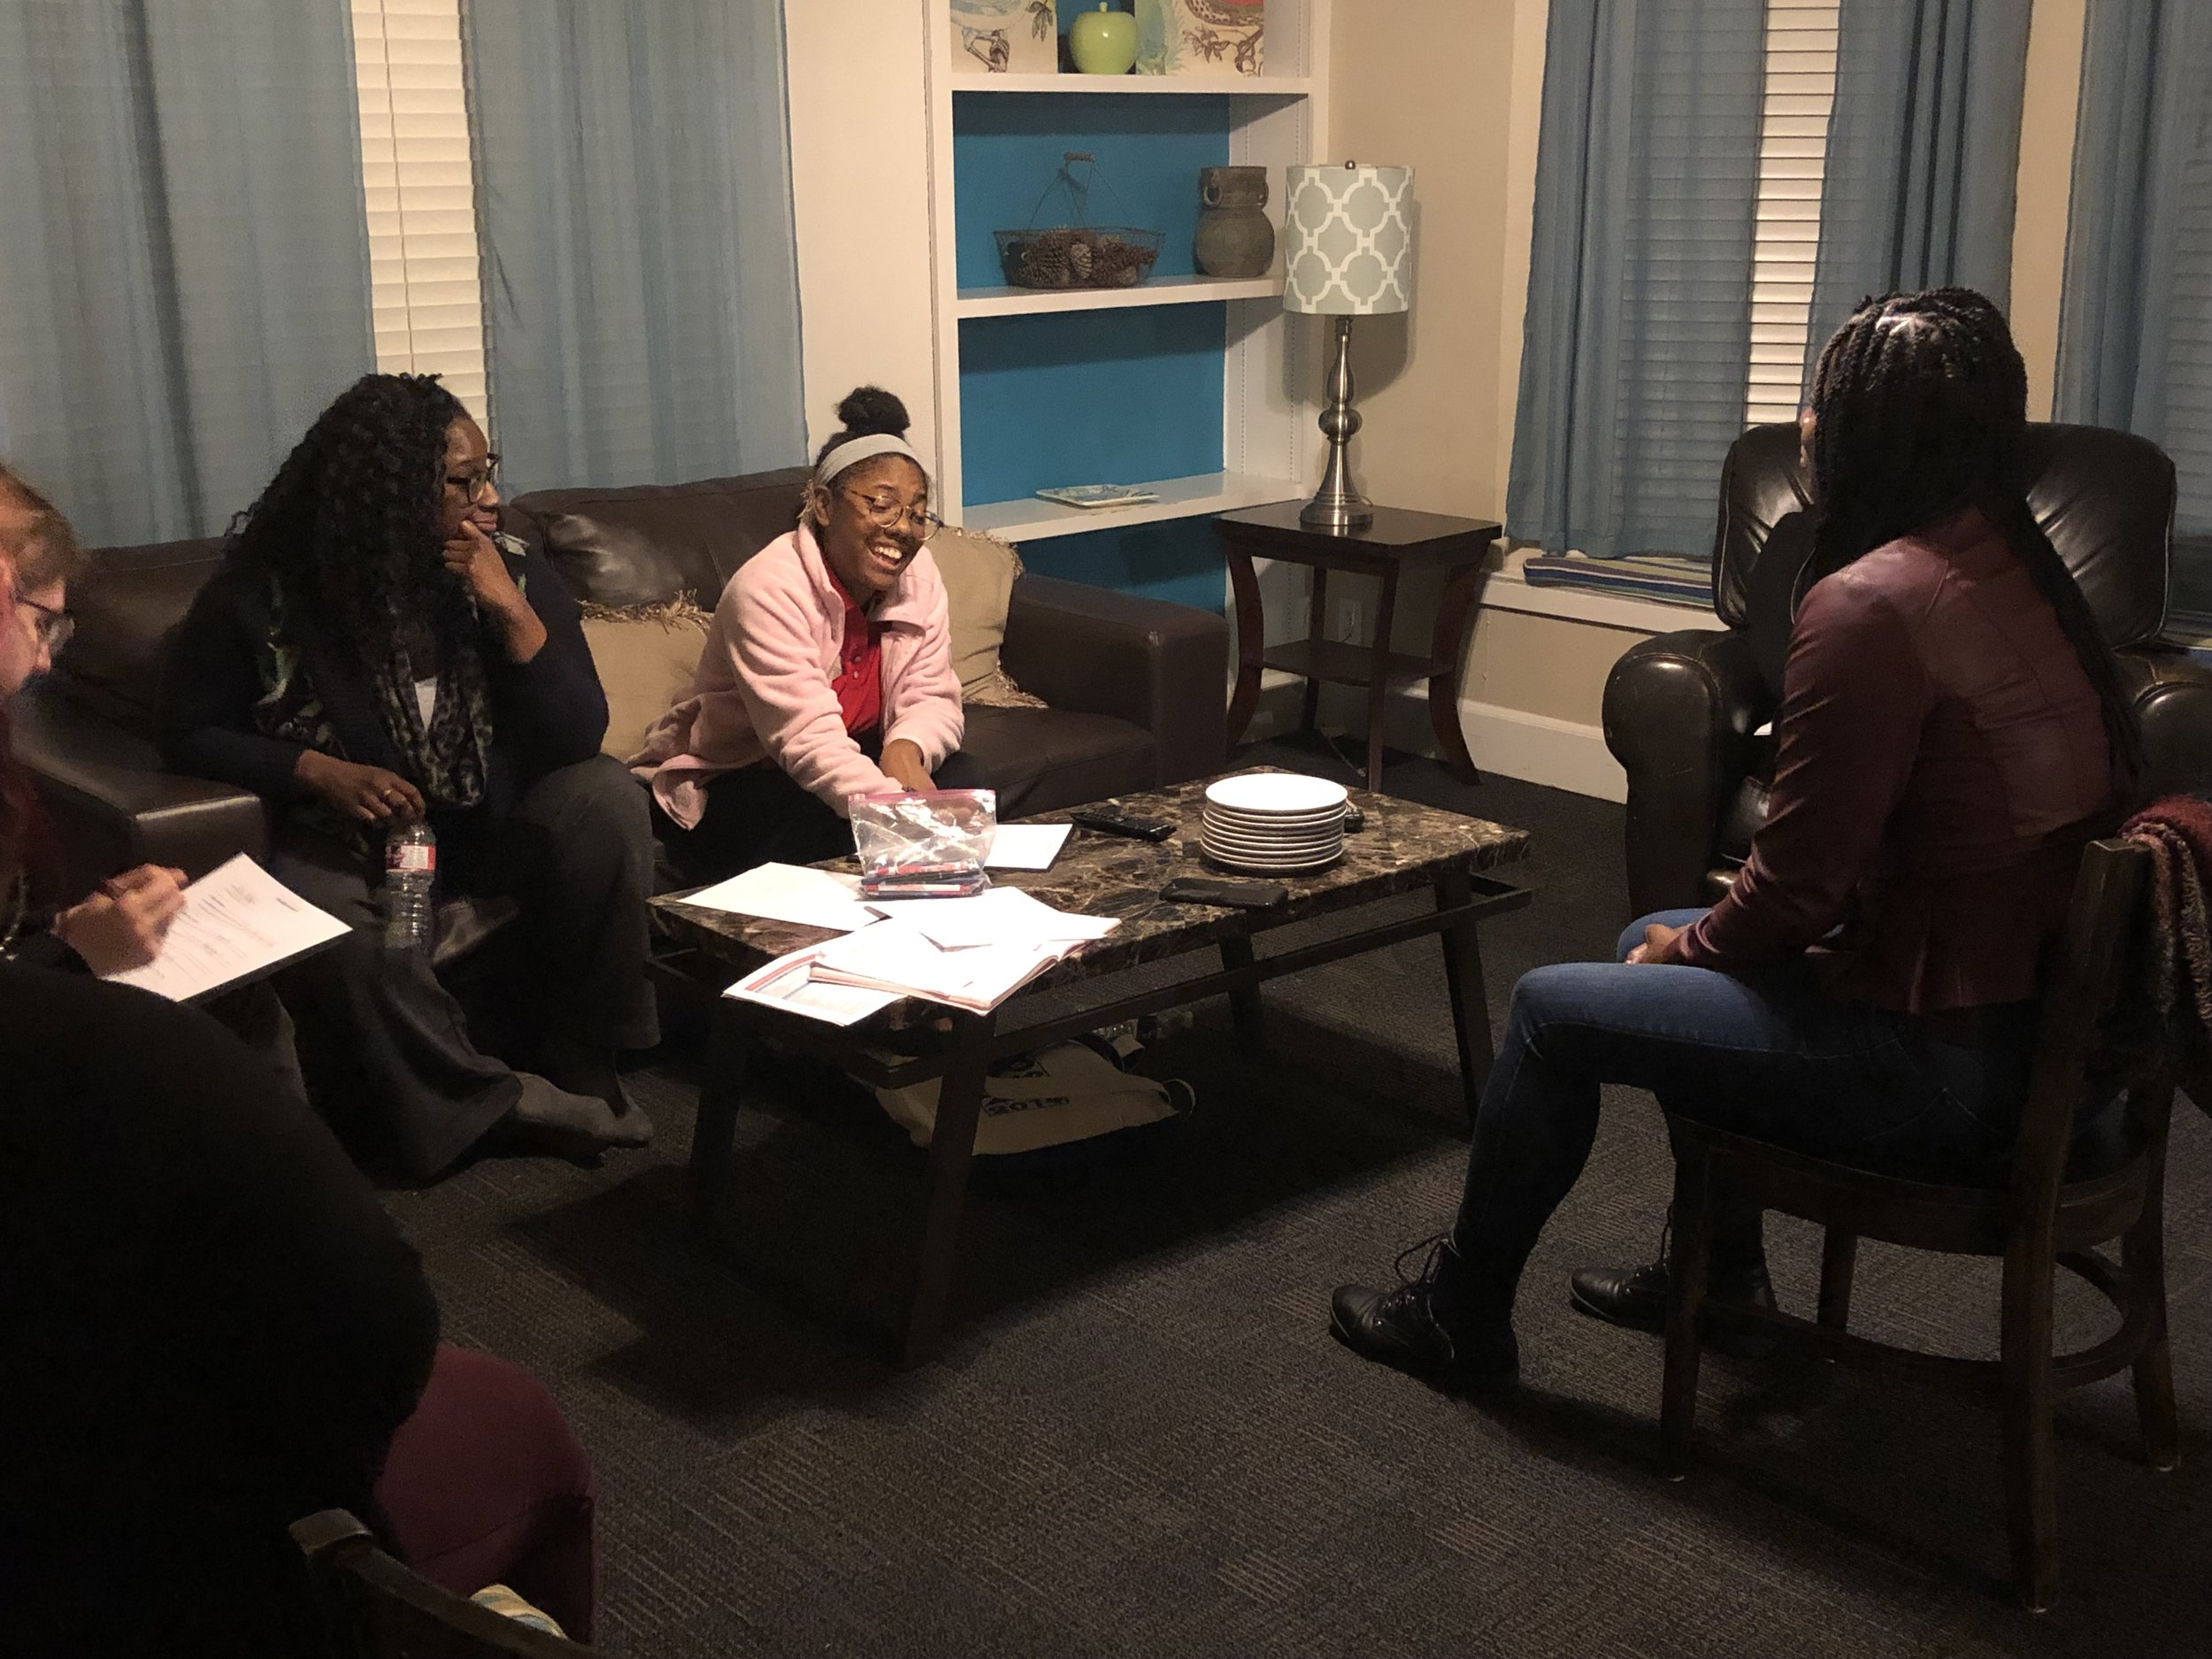 Date: Thursday February 28, 2019 and Thursday March 28, 2019  Location: Dallas, TX  Cleo discussed Financial Planning with  Our Friend's Place  resident's at Beasley House during their monthly skills night. We also discussed the importance of being aware of your spending habits.